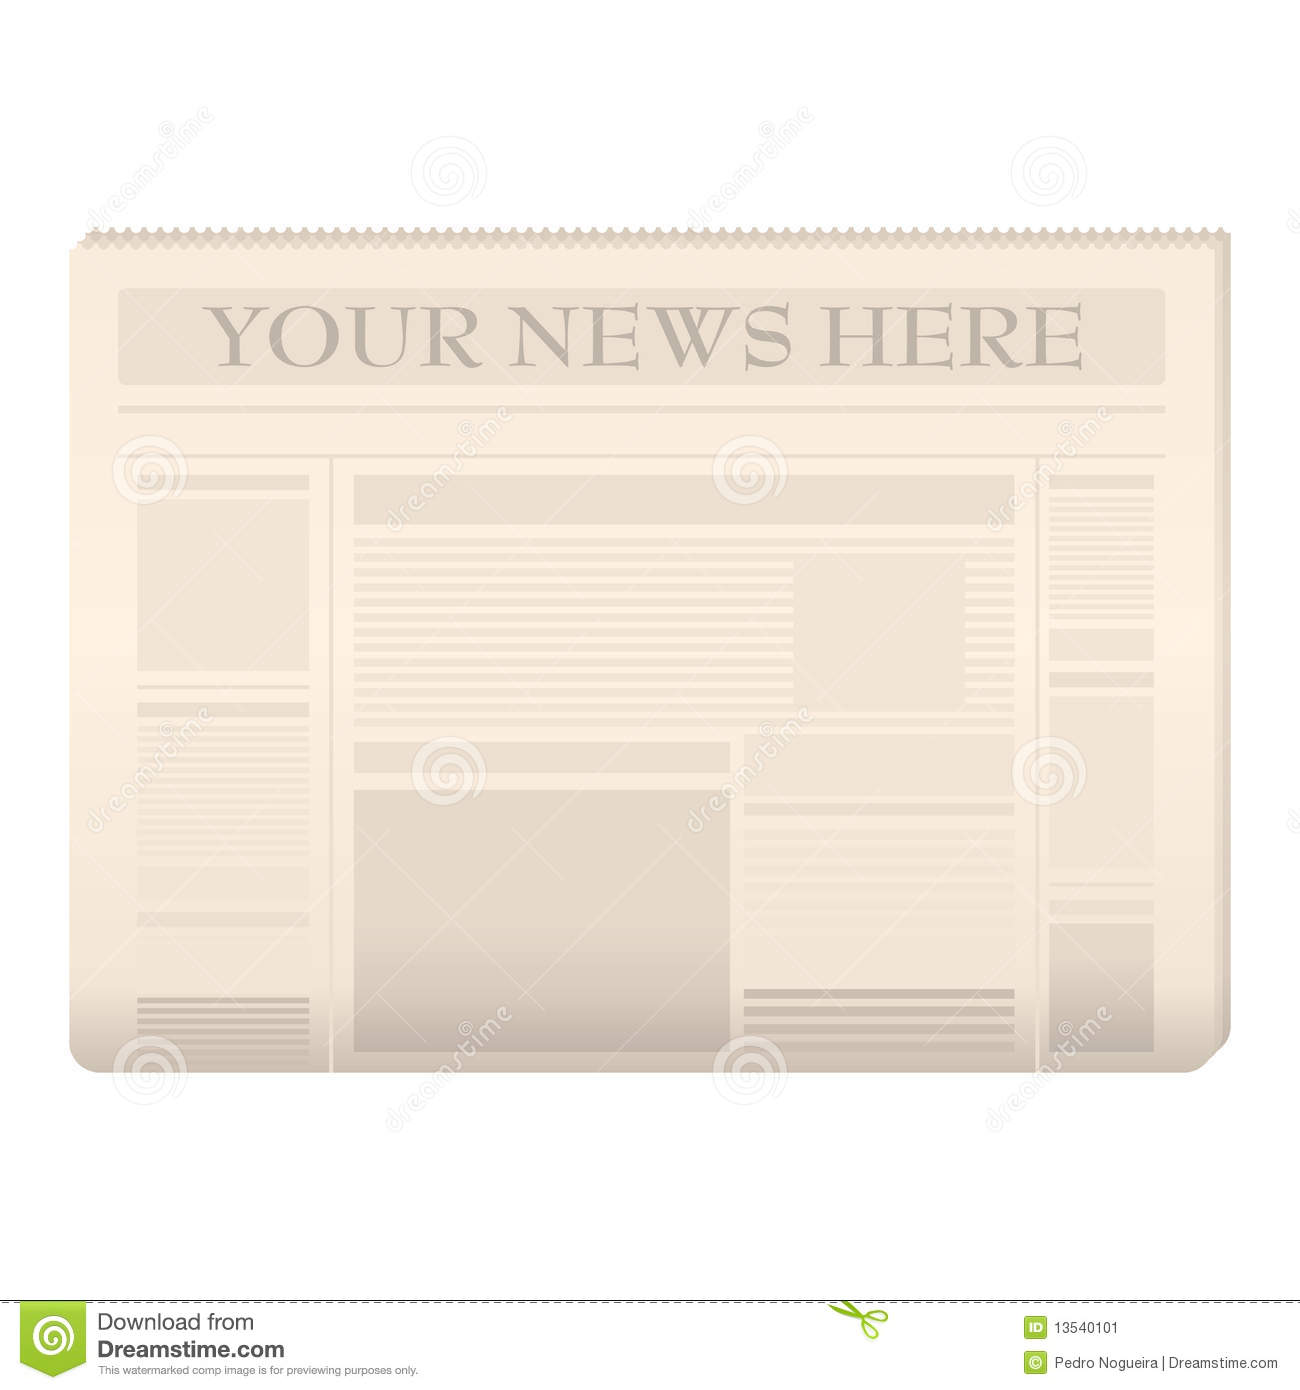 Colored newspaper template stock vector  Illustration of newspaper     Colored newspaper template